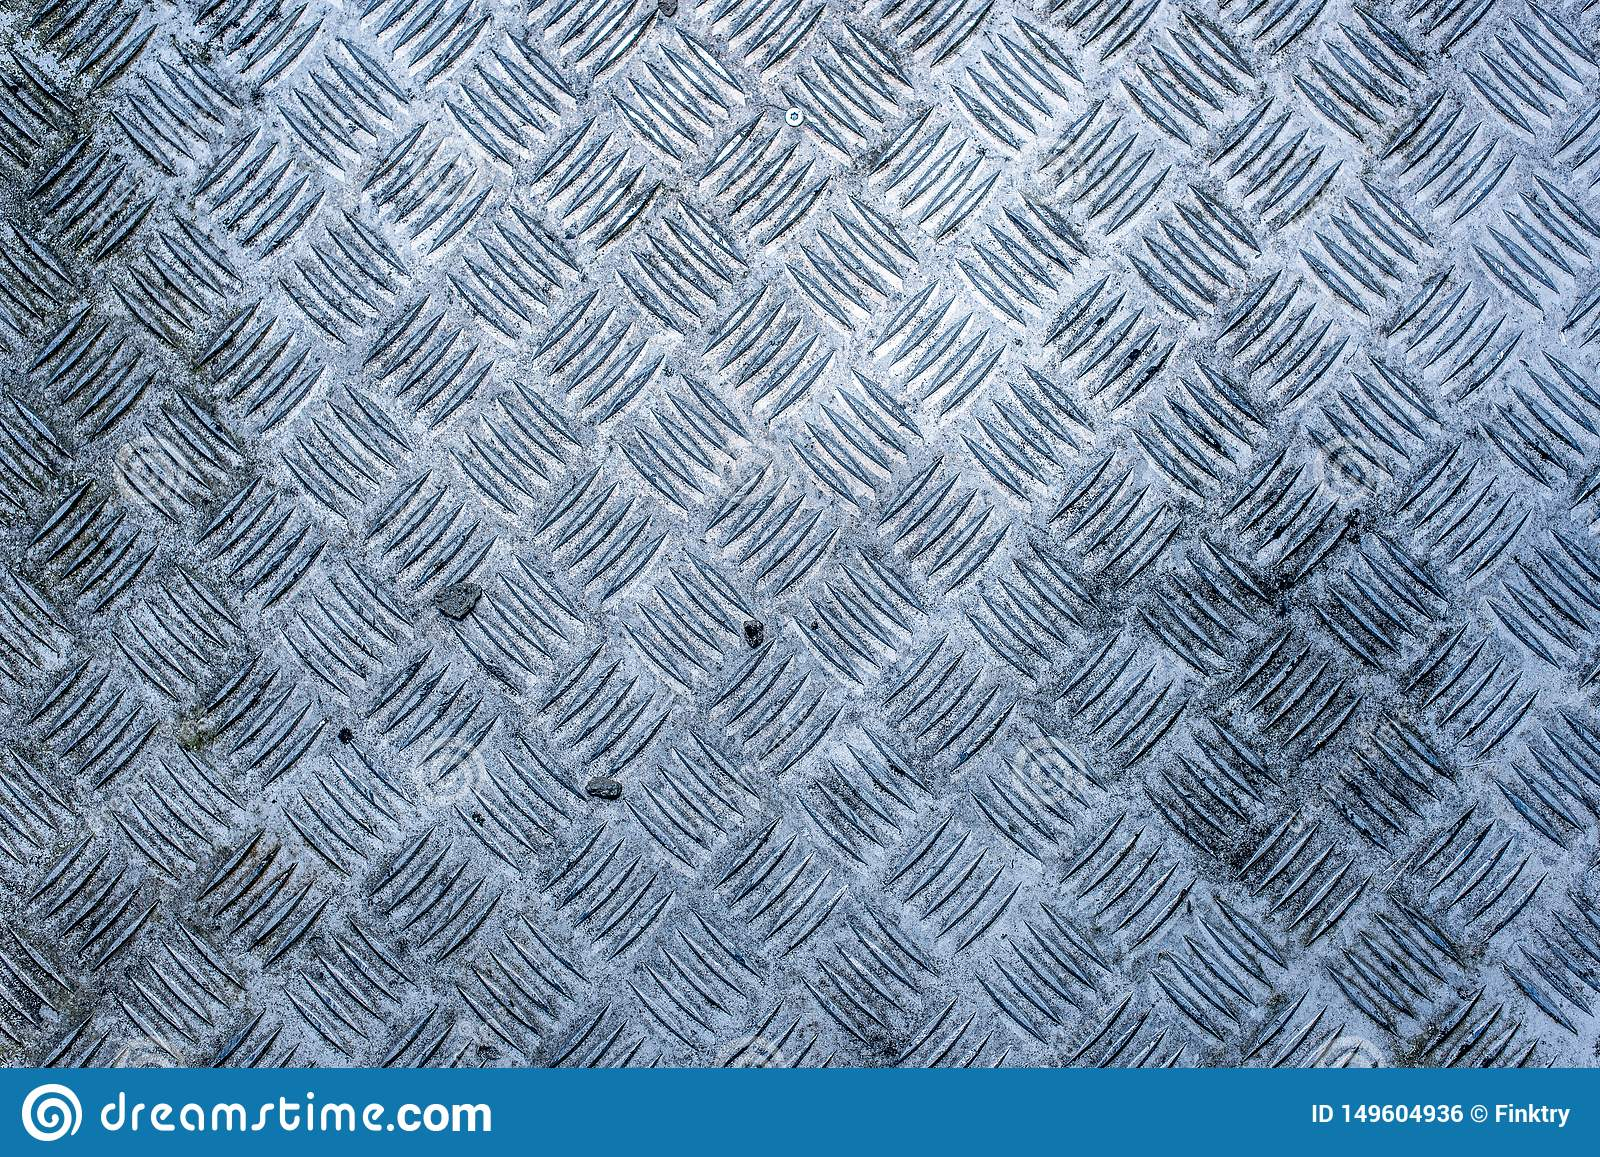 A dirty, worn and weathered diamond plate